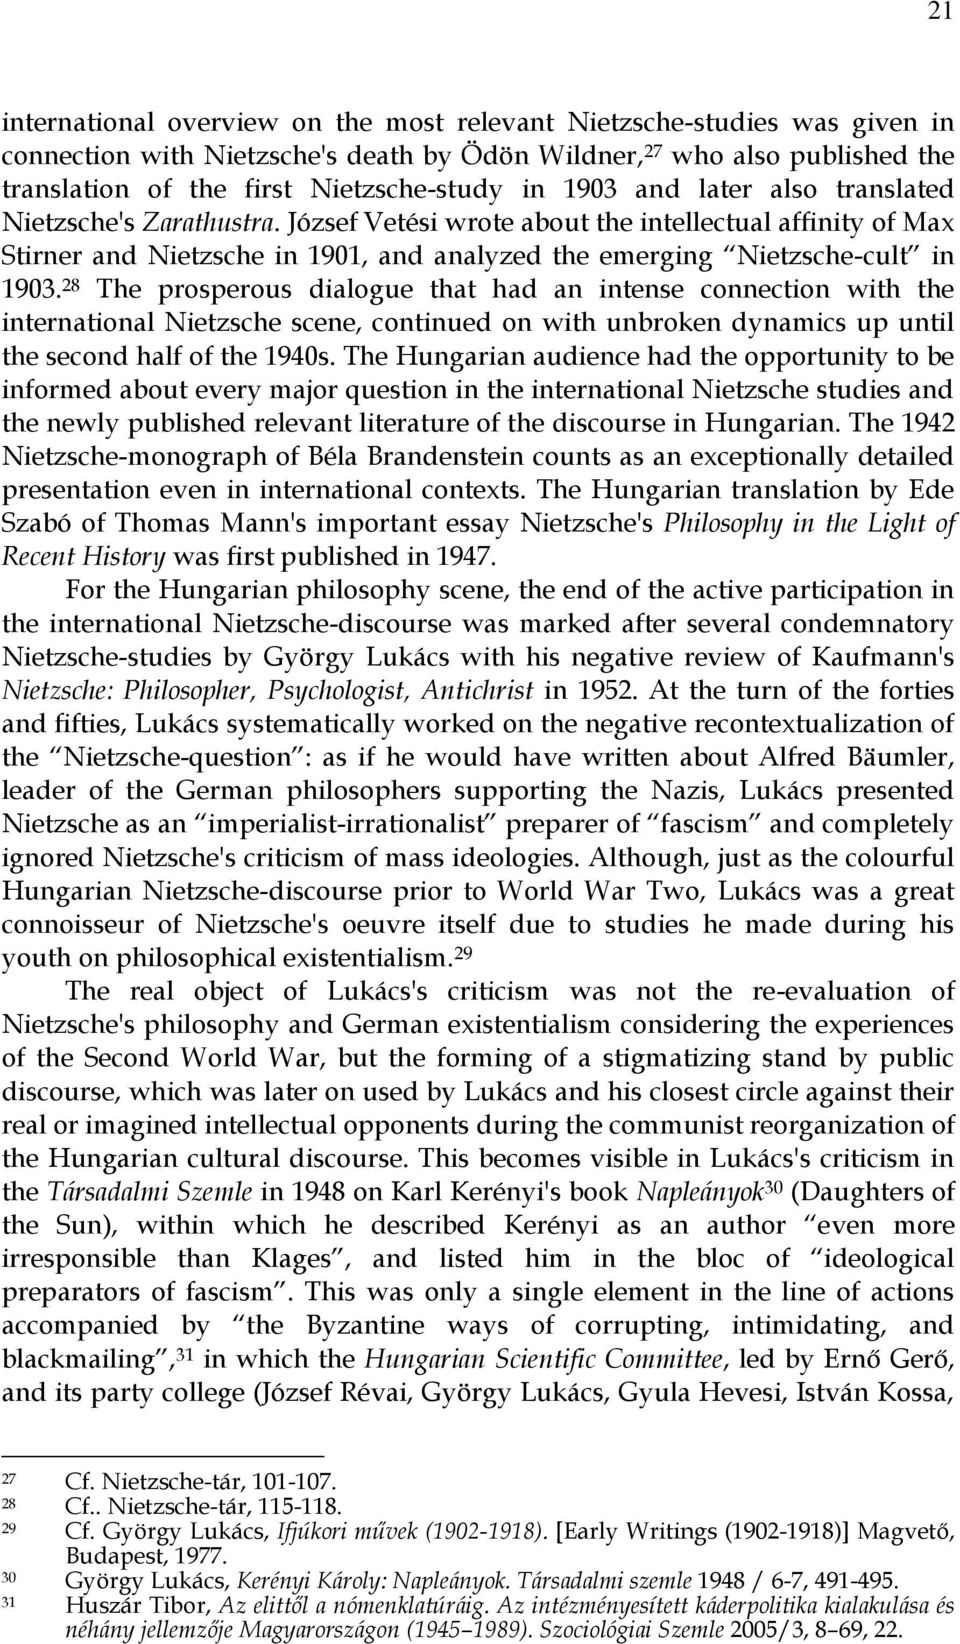 28 The prosperous dialogue that had an intense connection with the international Nietzsche scene, continued on with unbroken dynamics up until the second half of the 1940s.